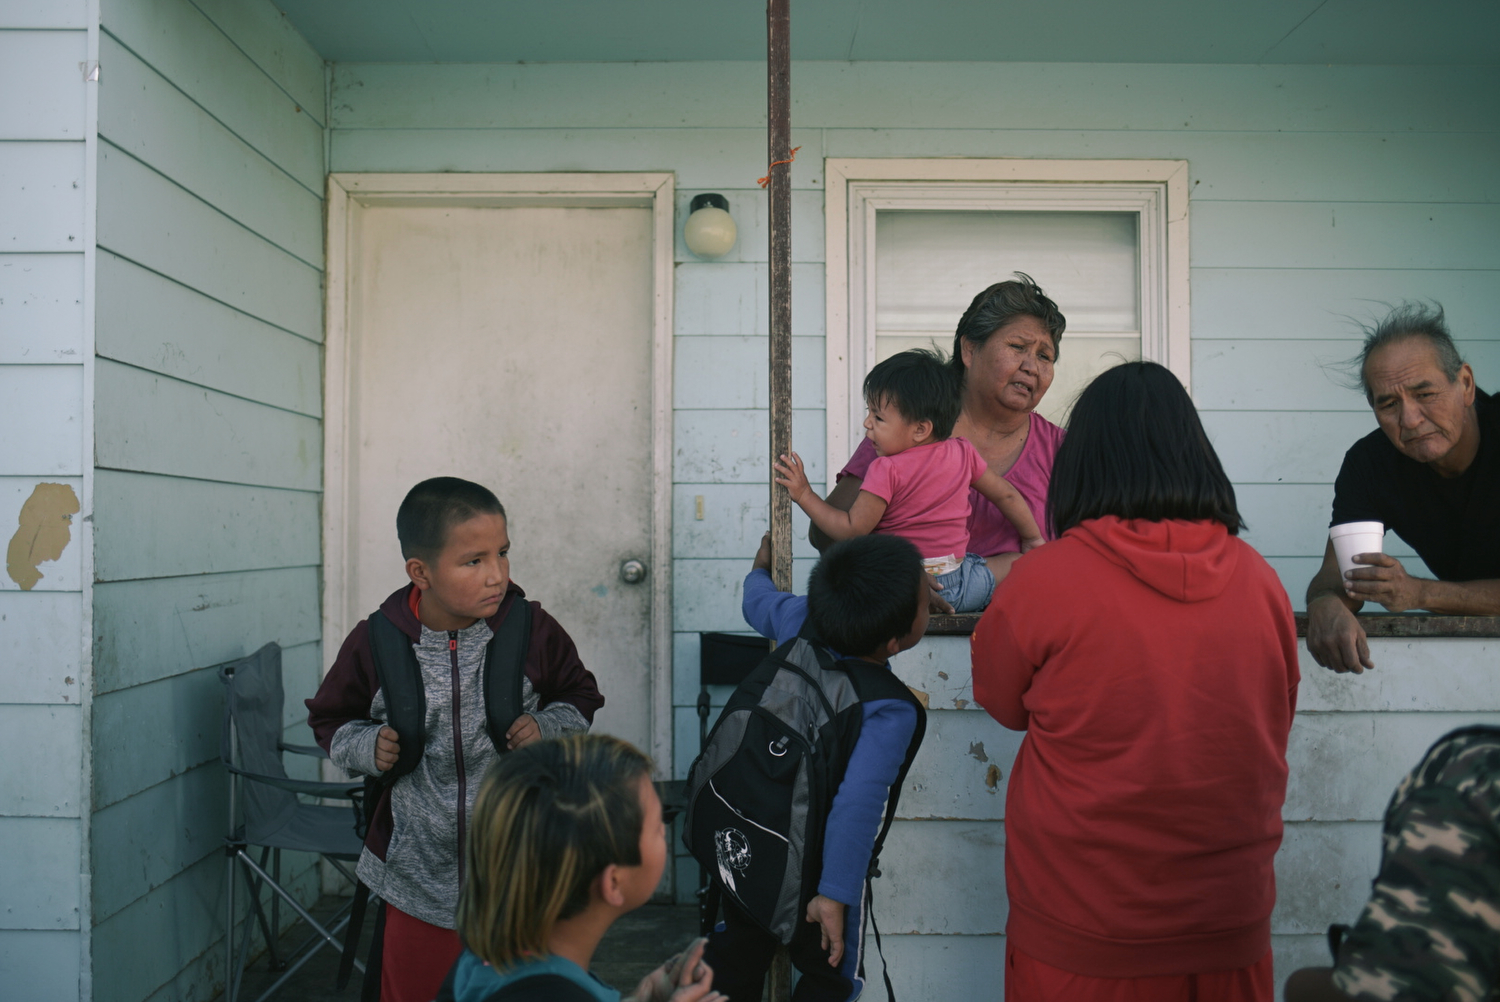 Elsie greets her grandchildren, whom she raises, as they come home from school.